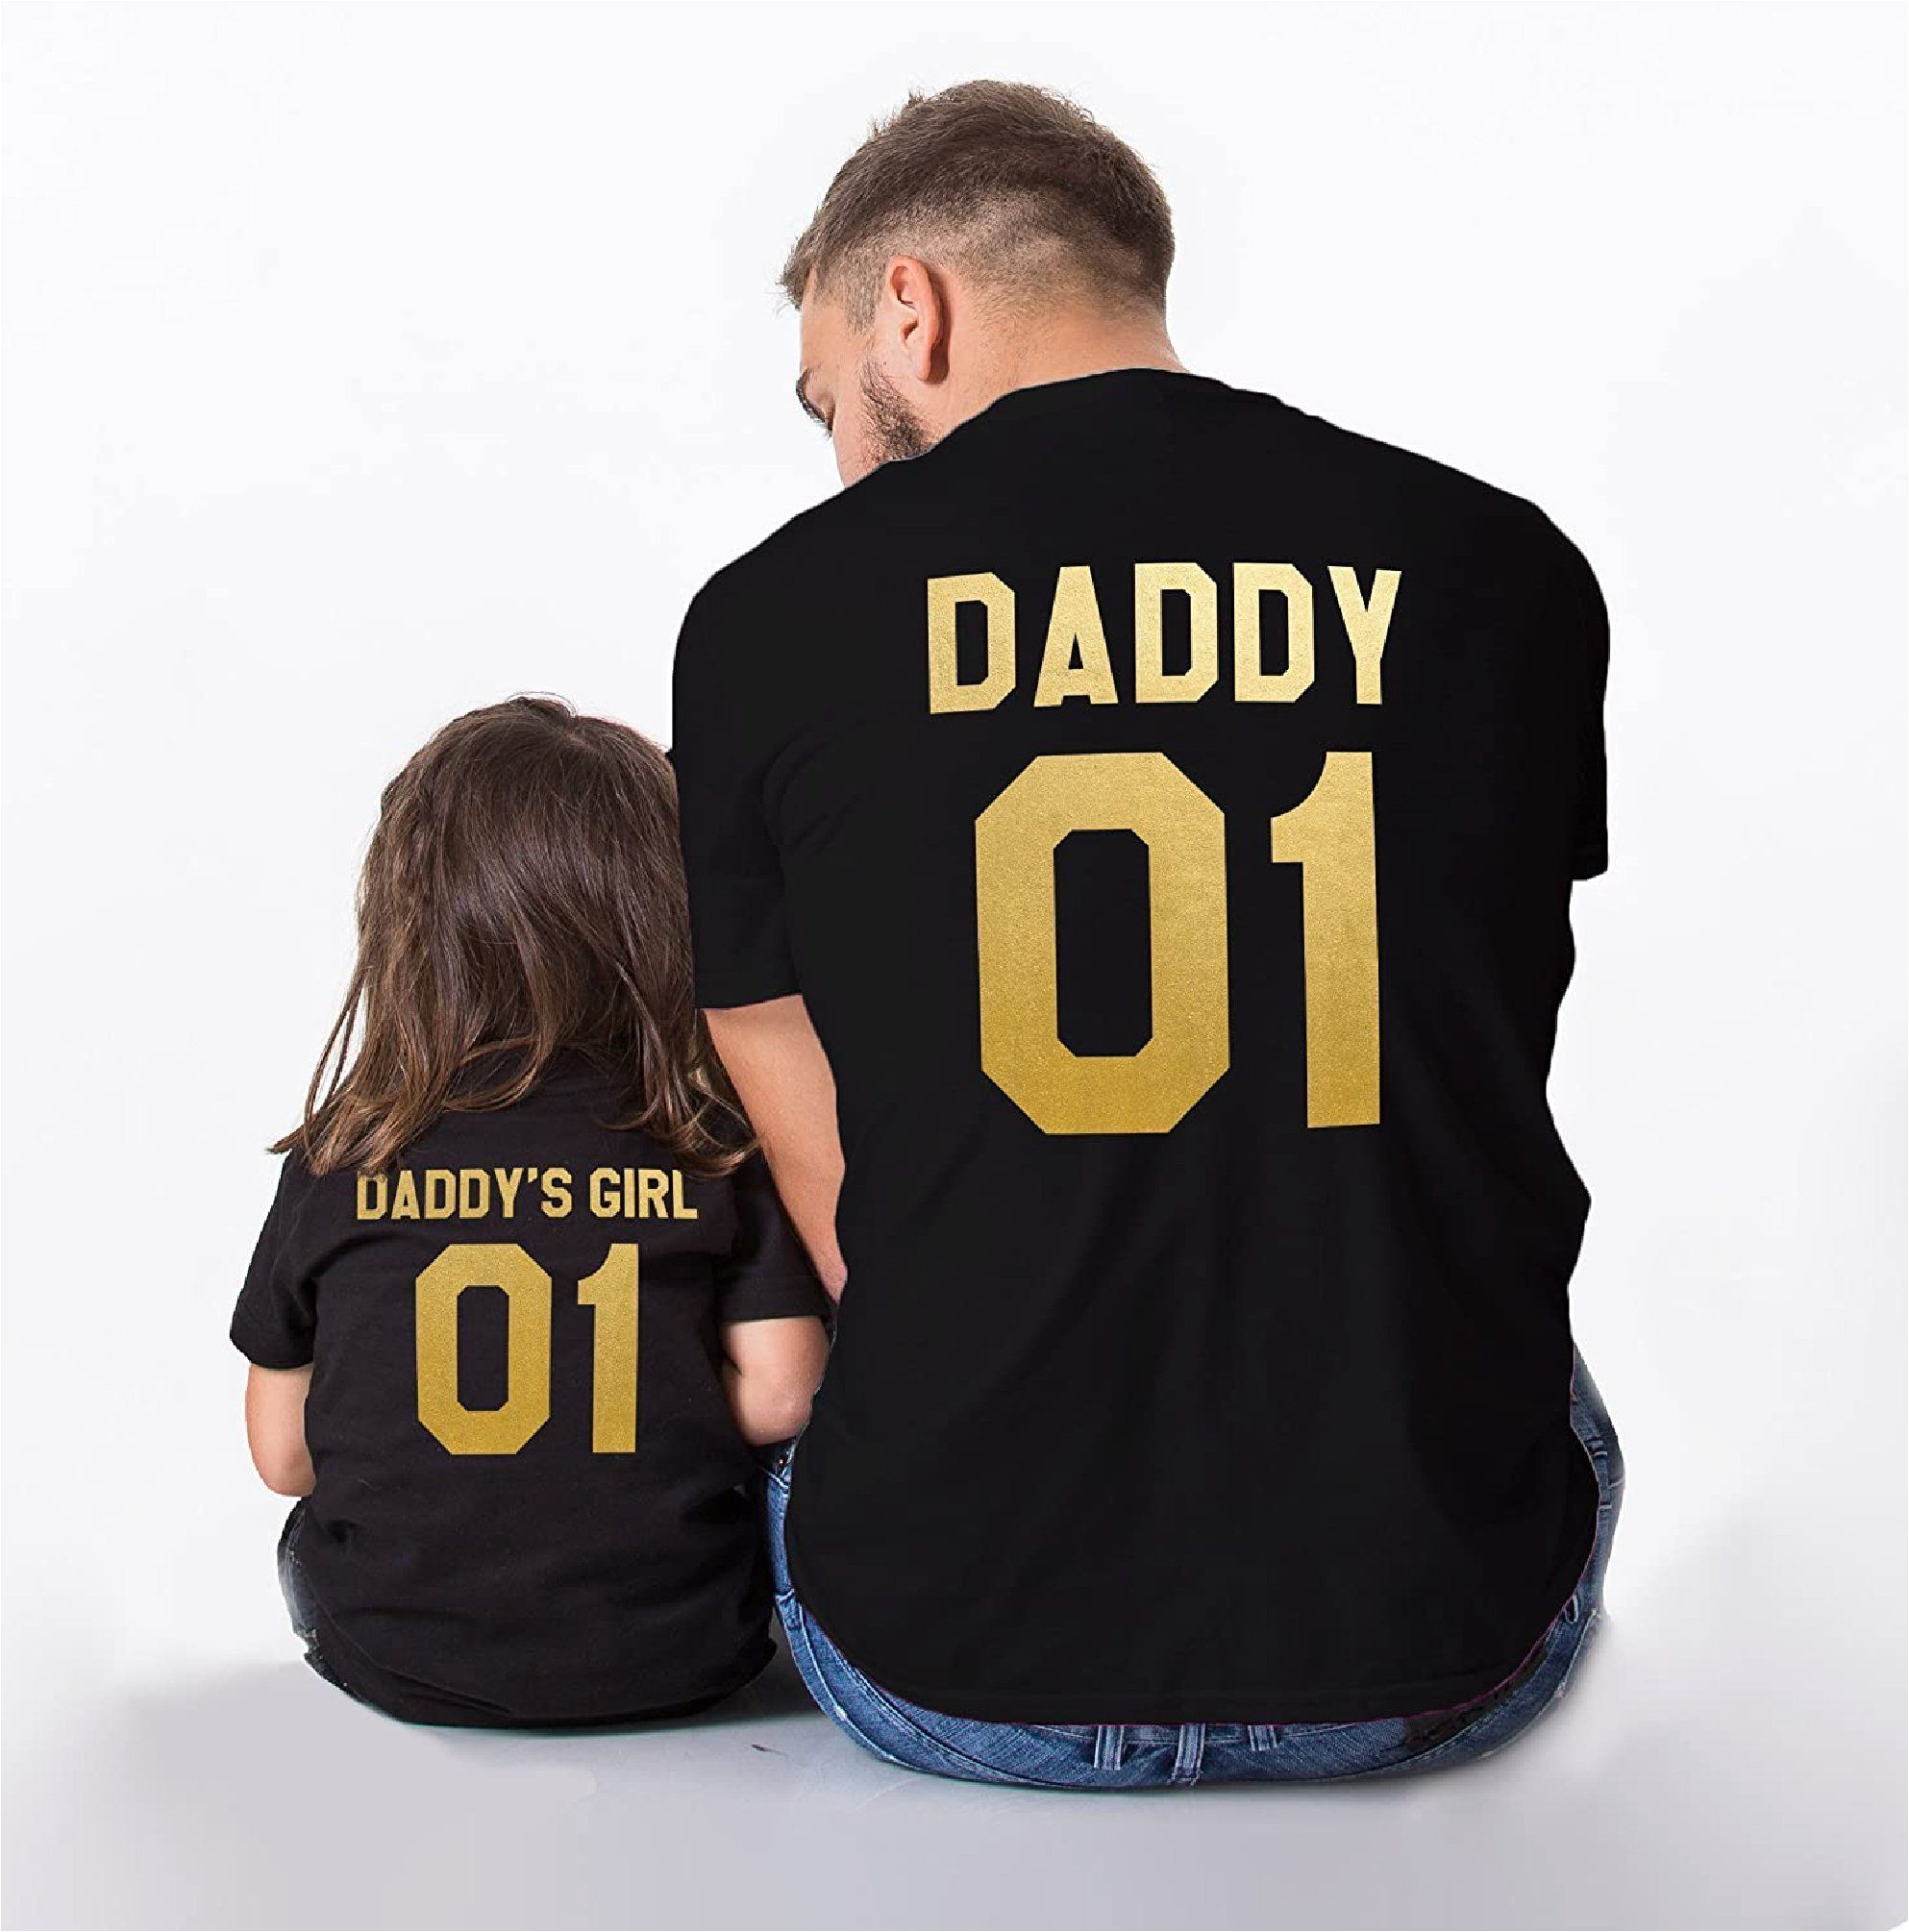 ♡ The perfect Tshirt for the Daddy and his Girls! ♥ Free UK Shipping ♥ 100% Cotton ♥ Quirky, fun Tshirt ♥ Please add each item to your cart separately if you would like the adult and kids tops. ♥ Gold Text ♥ Short Sleeves